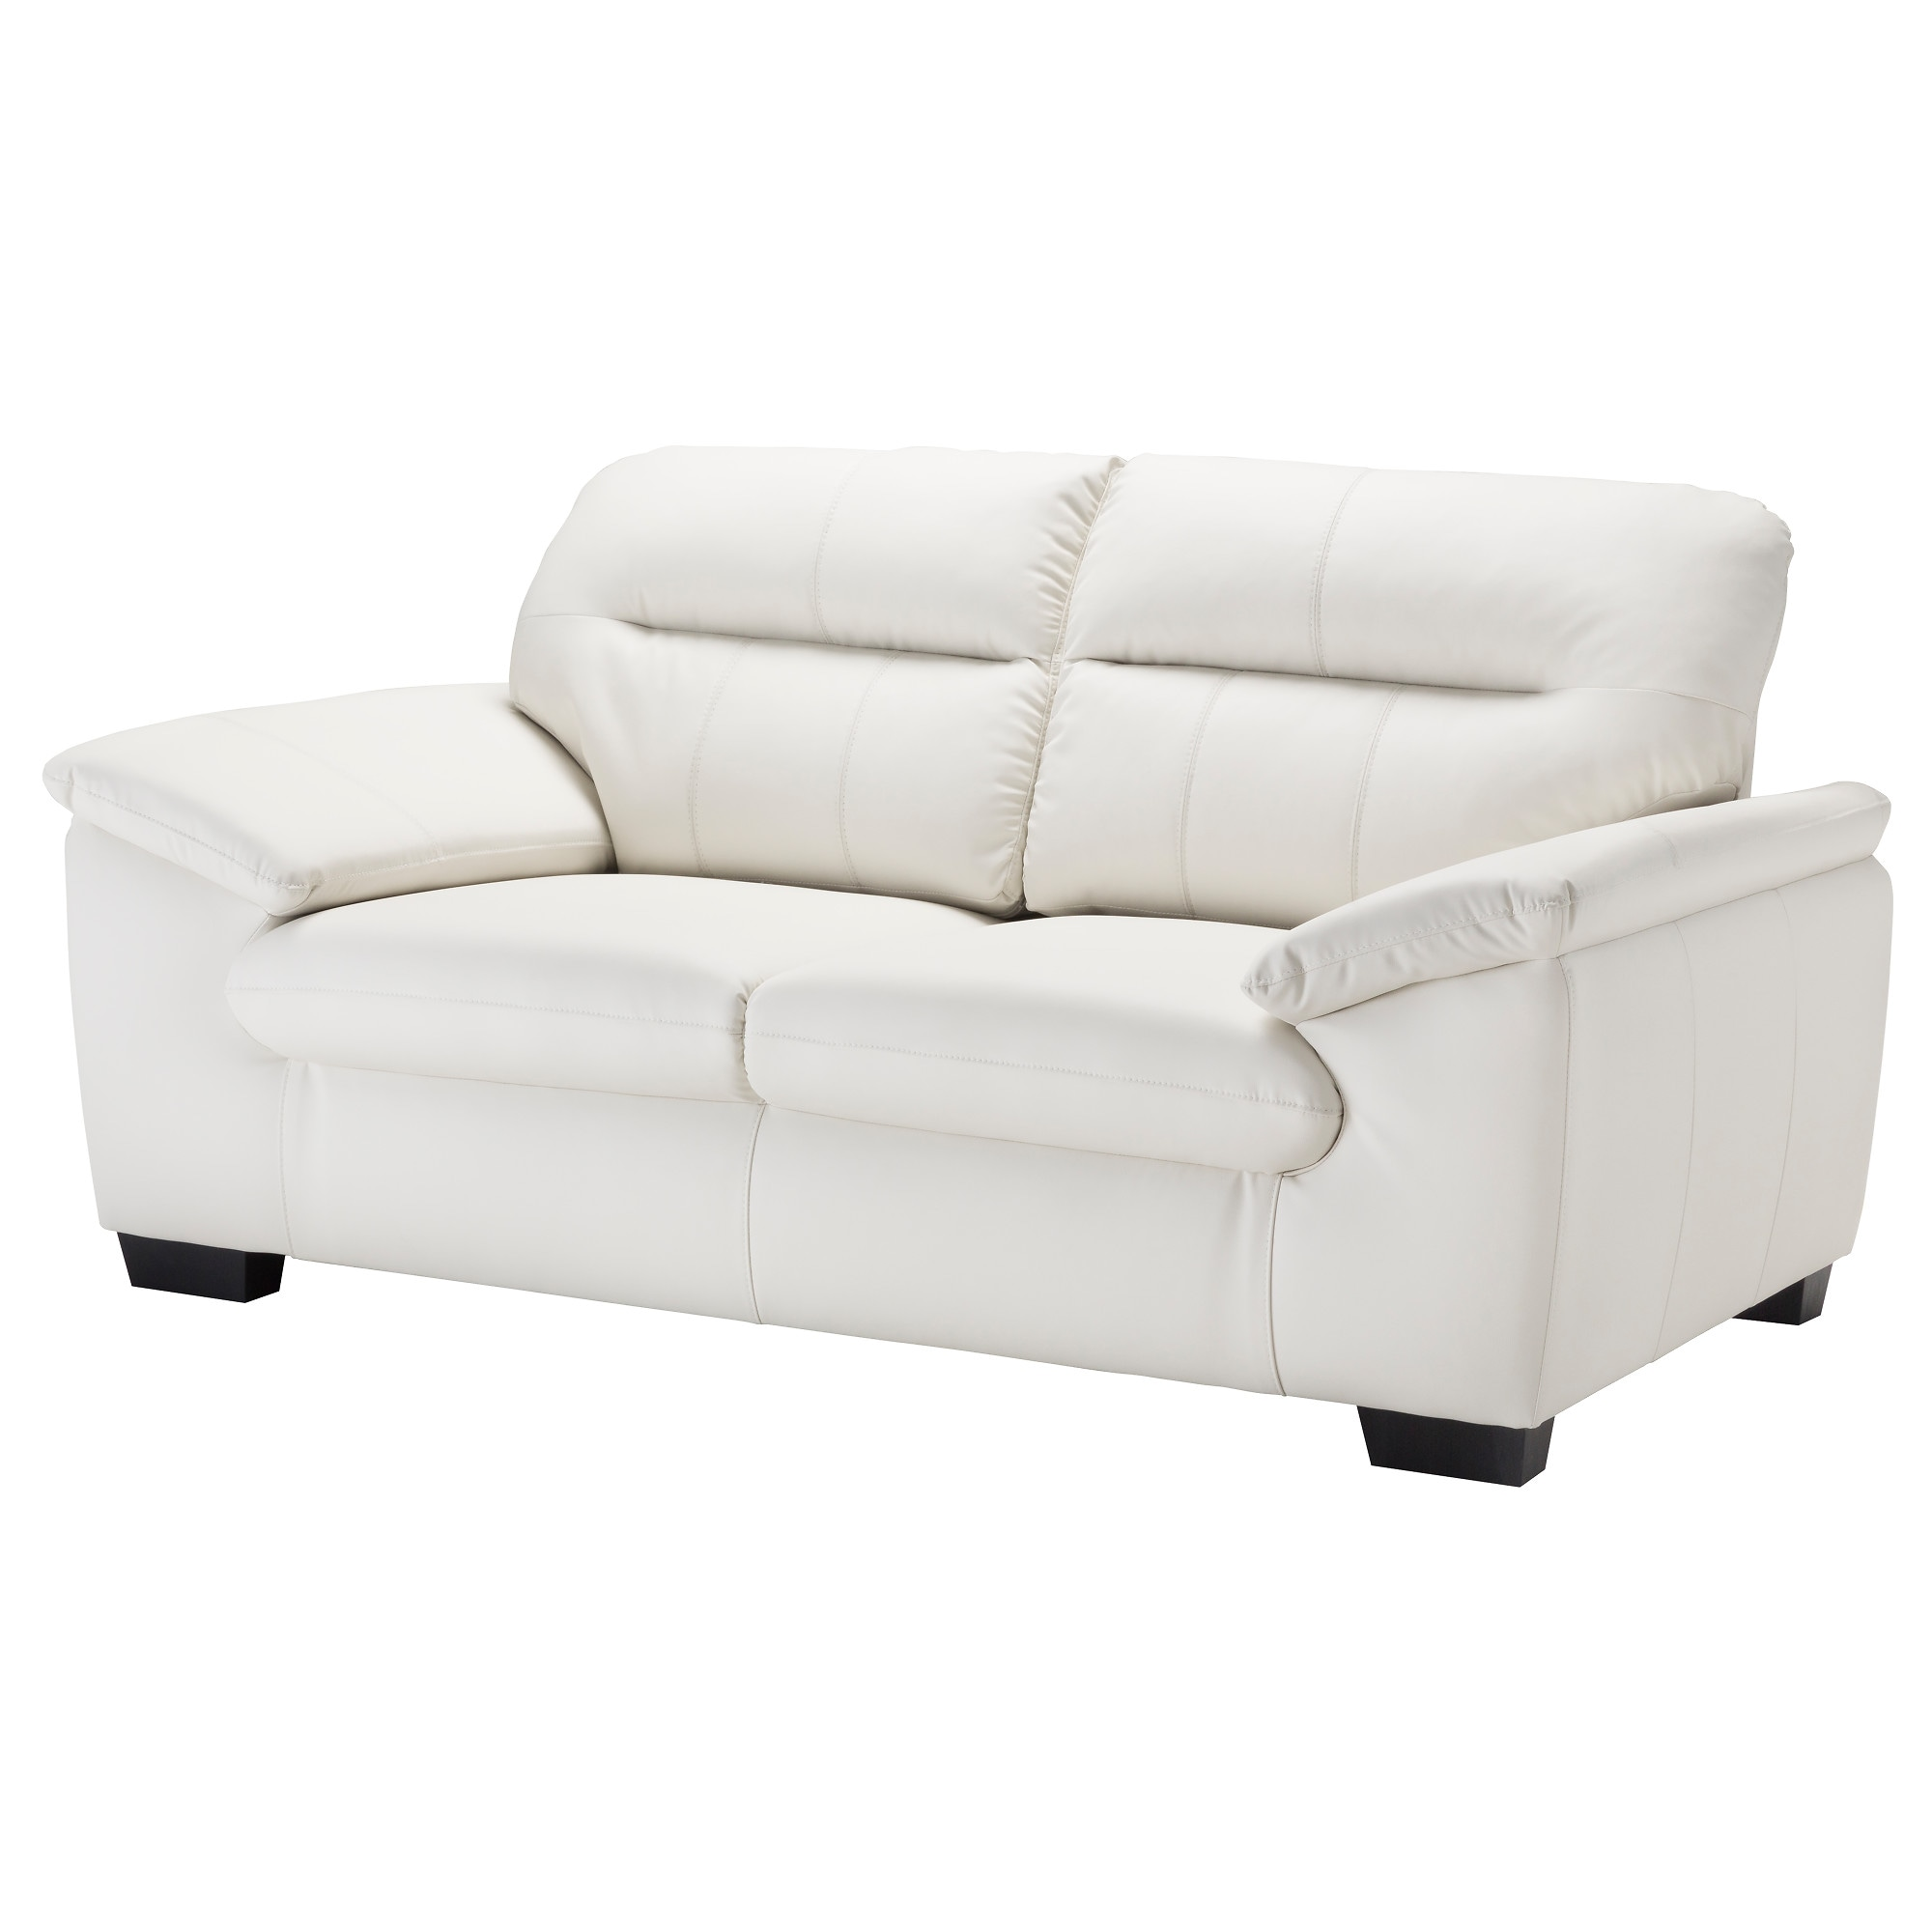 Sofas de piel madrid perfect sofas de piel with sofas de for Sofas piel madrid